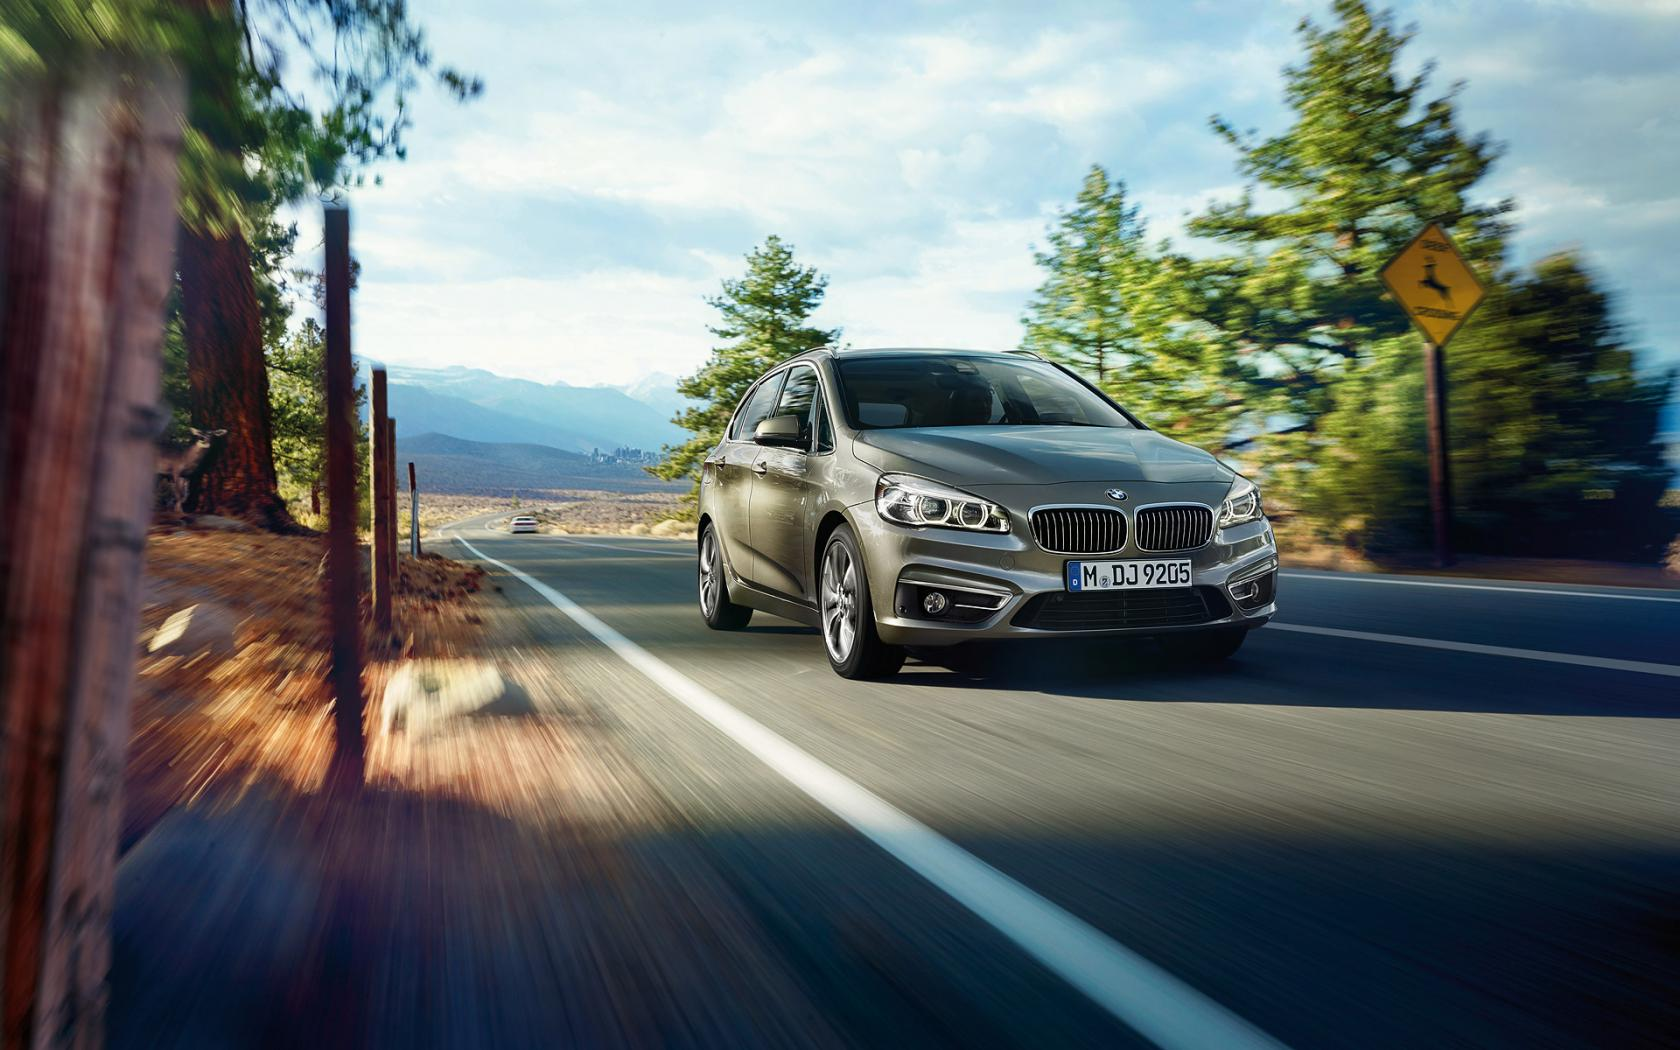 BMW-Serie-2-Active-Tourer_20170721-1458.jpeg